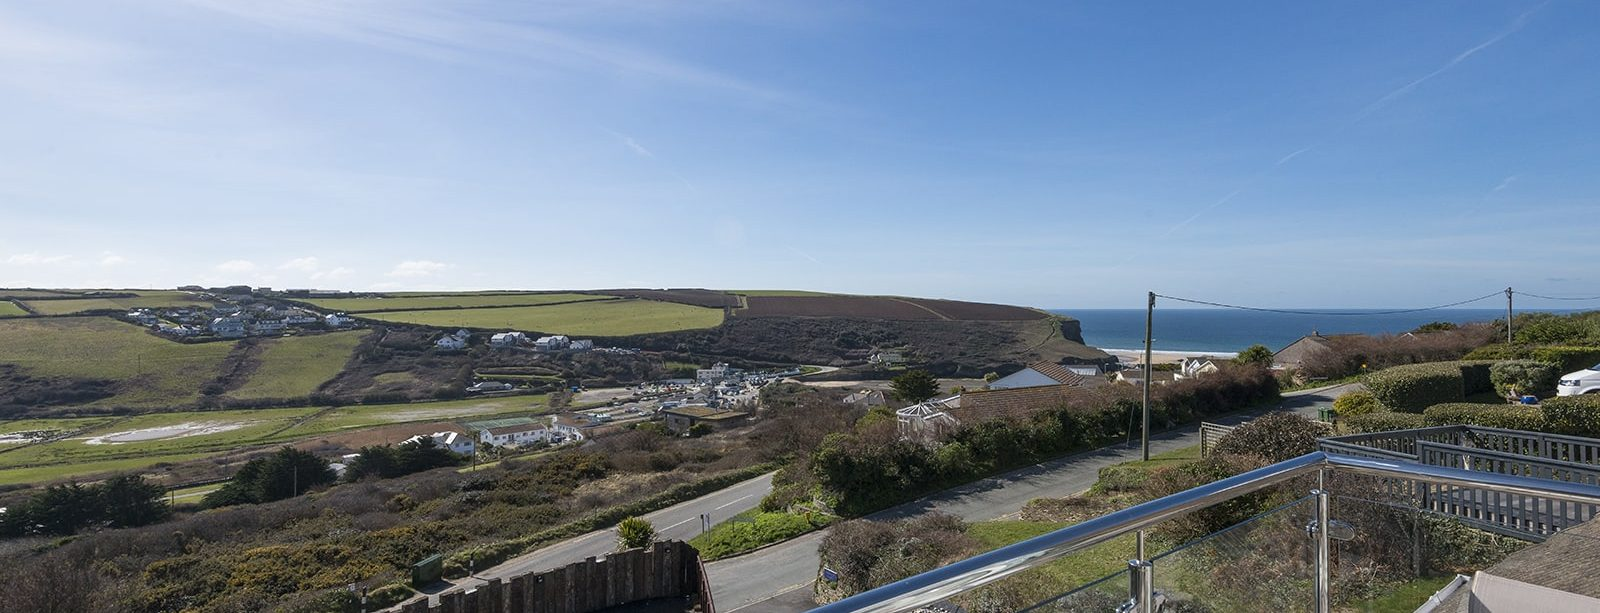 Self-catering holiday accommodation in Cornwall